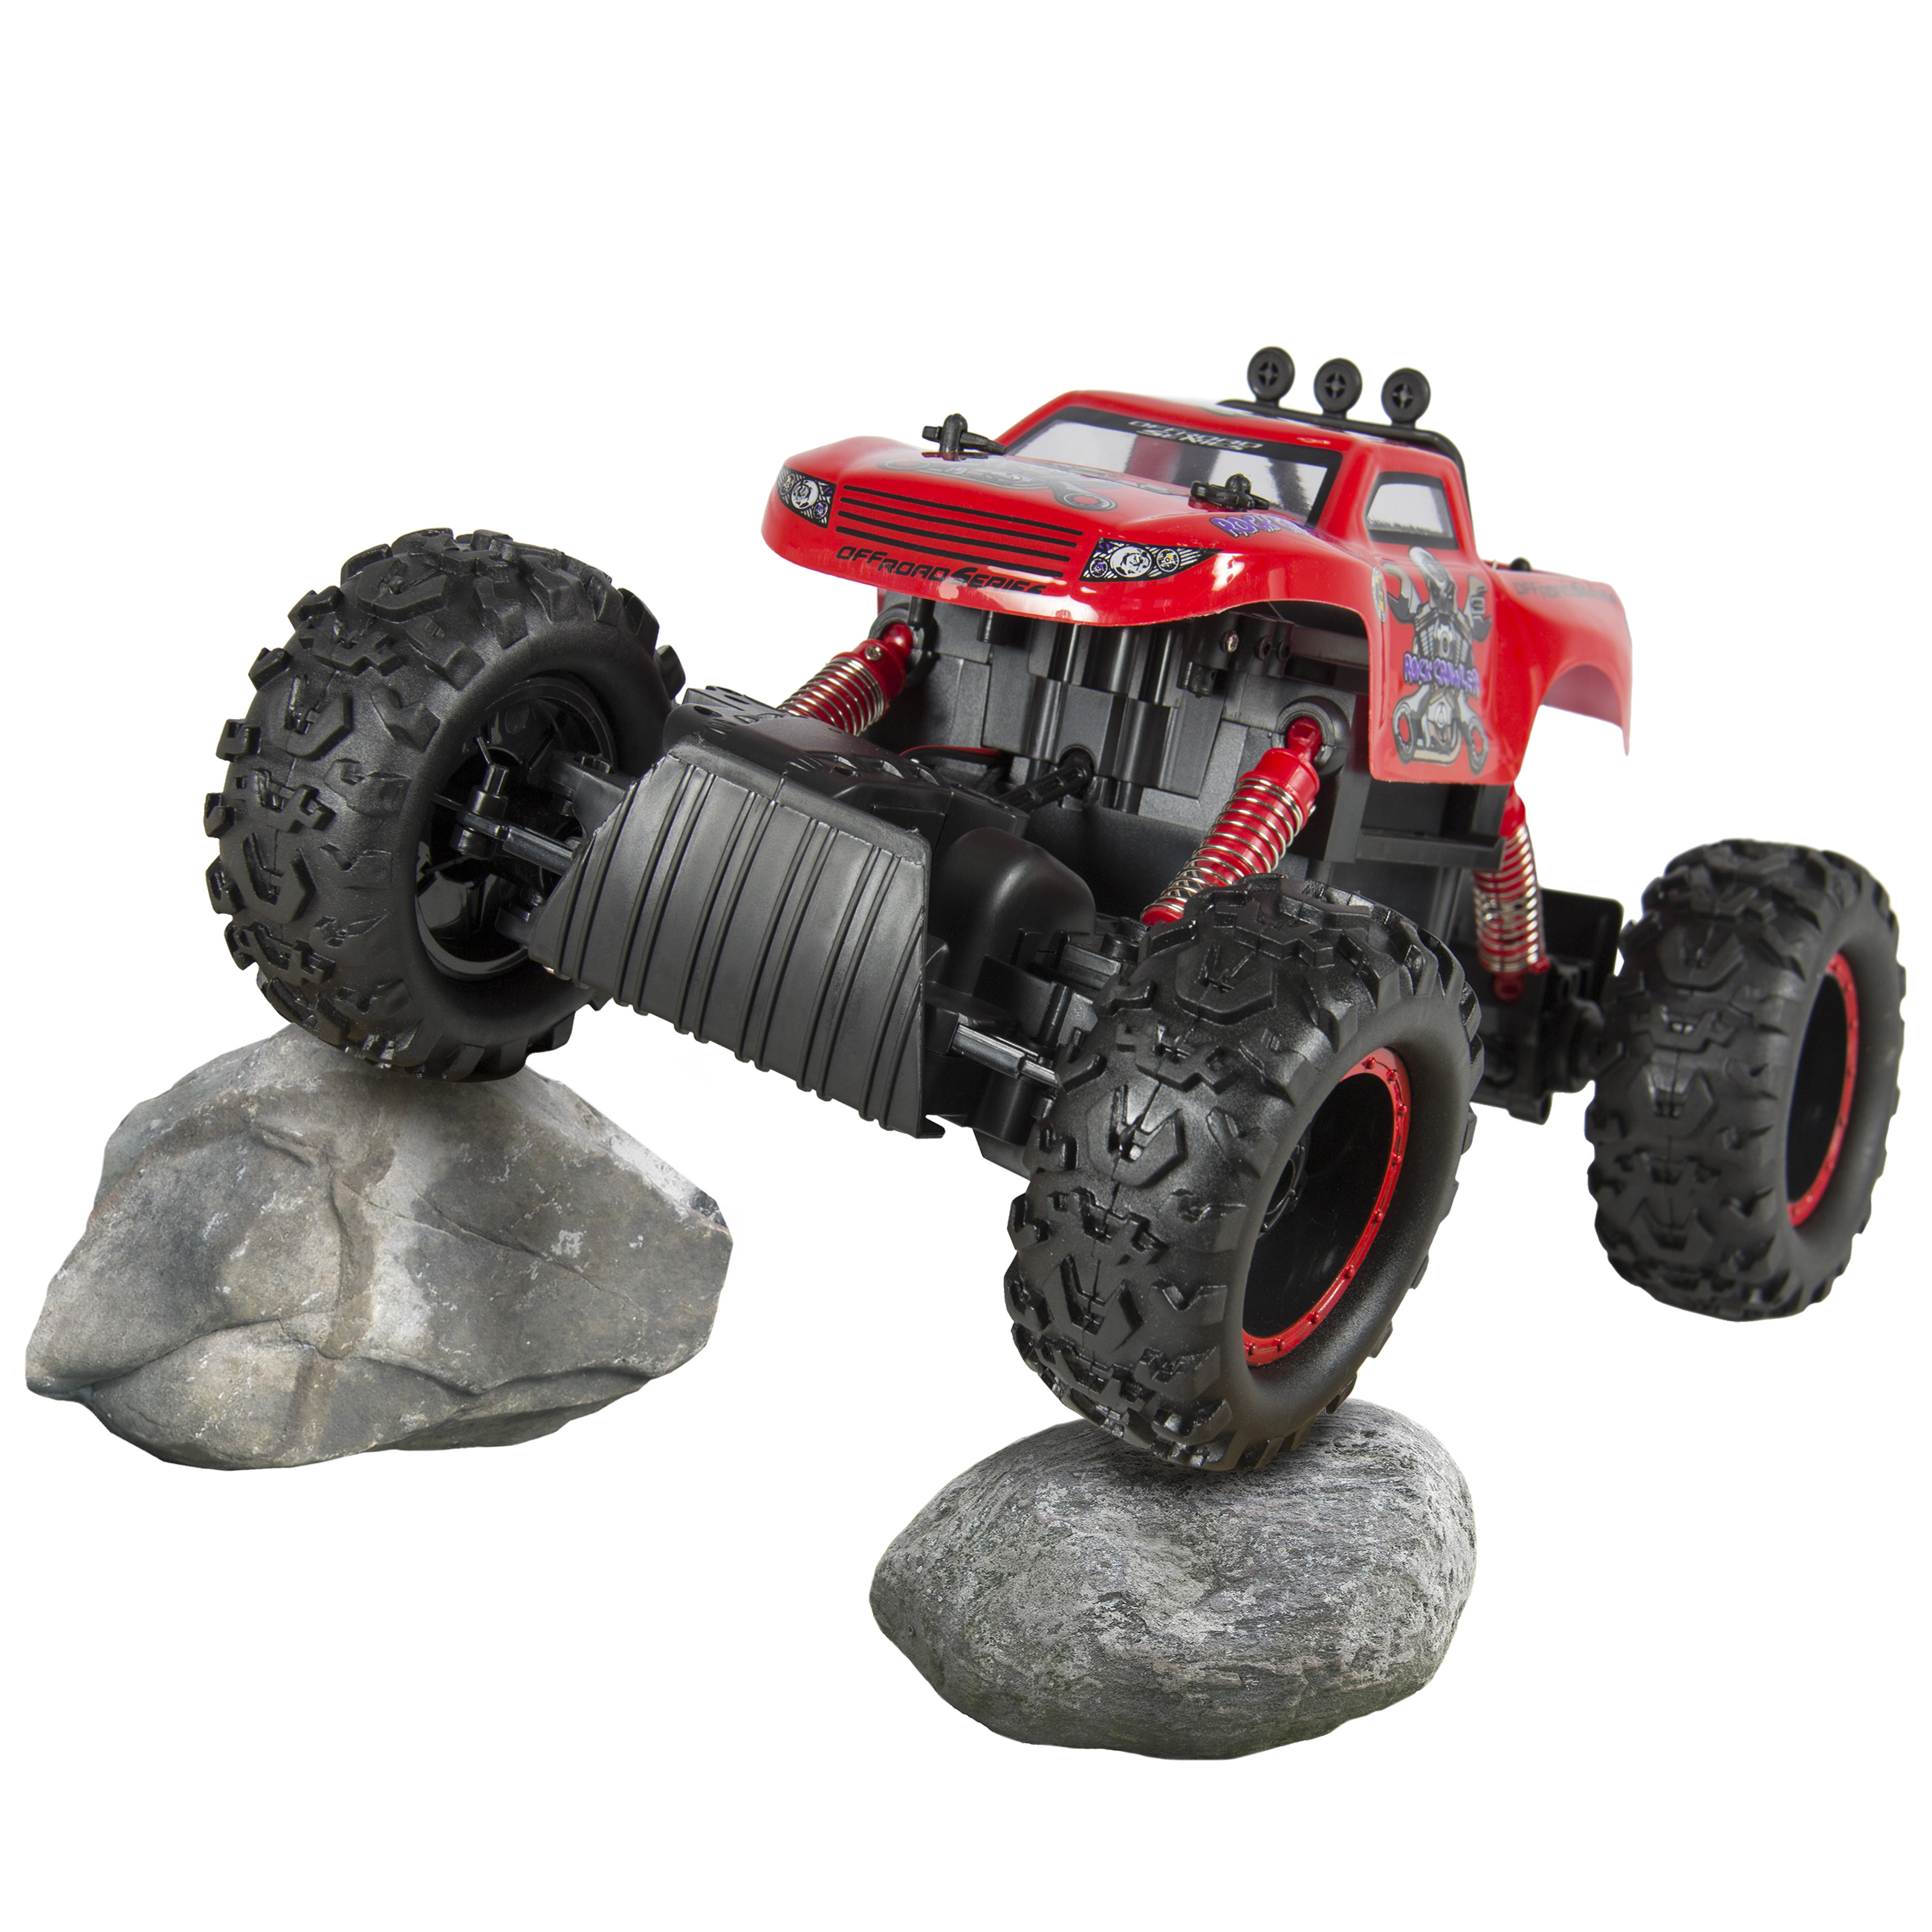 Best Choice Products 4WD Powerful Remote Control Truck RC Rock Crawler & Monster Wheels Red by Best Choice Products